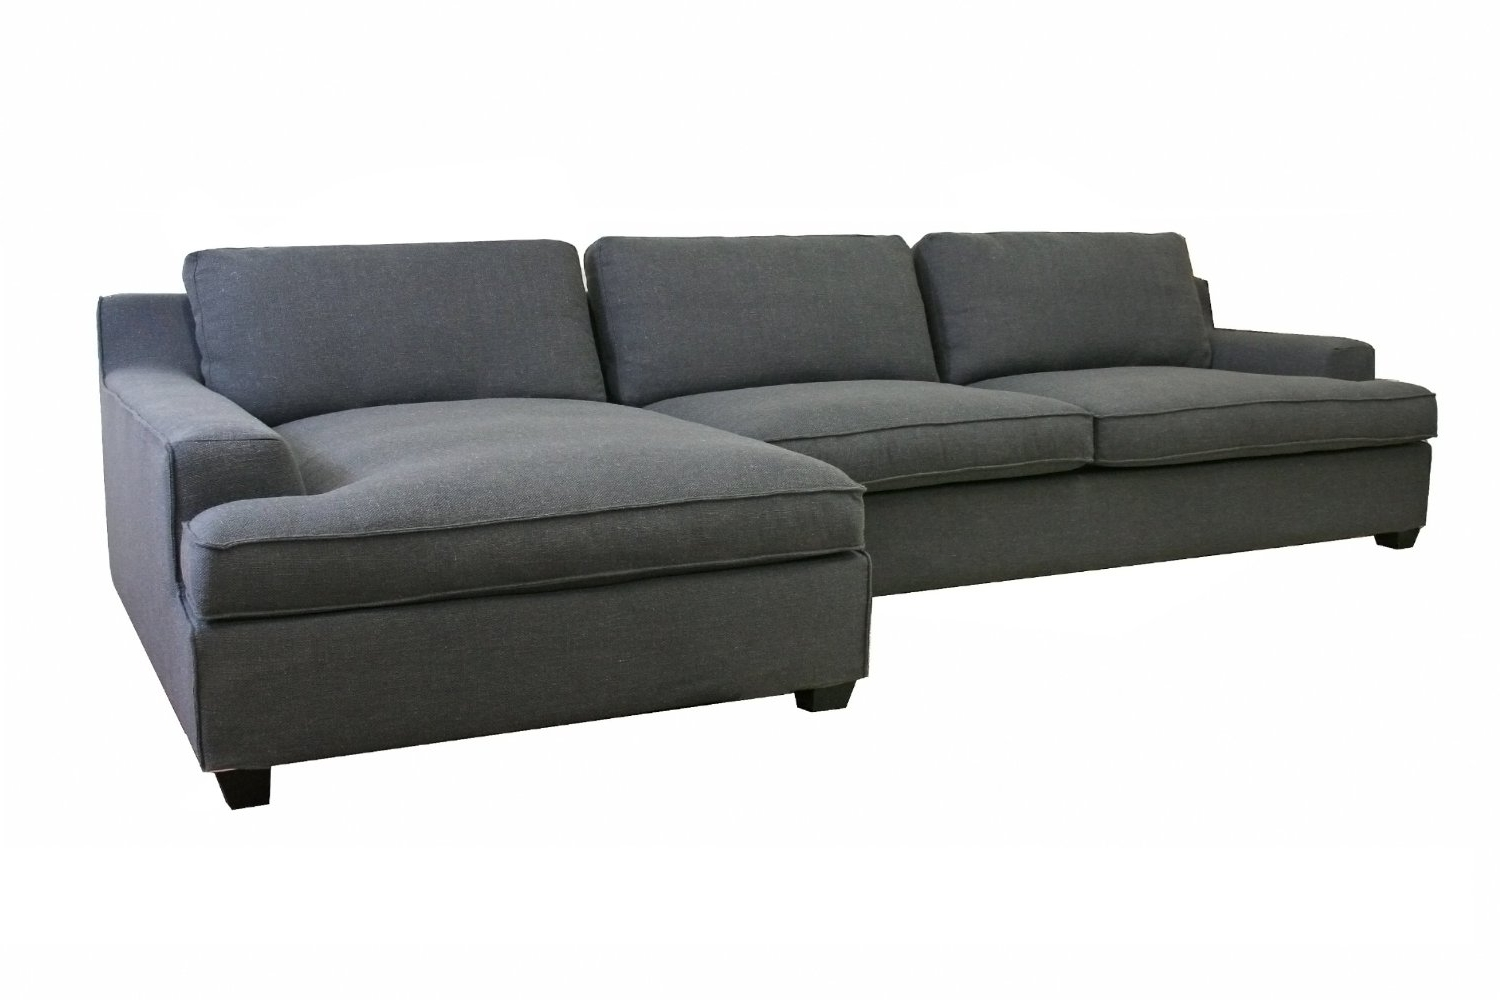 Sofa Chaise Sleepers Pertaining To Most Current Sectional Sofa Design: Sleeper Sofa With Chaise Best Ever (View 8 of 15)